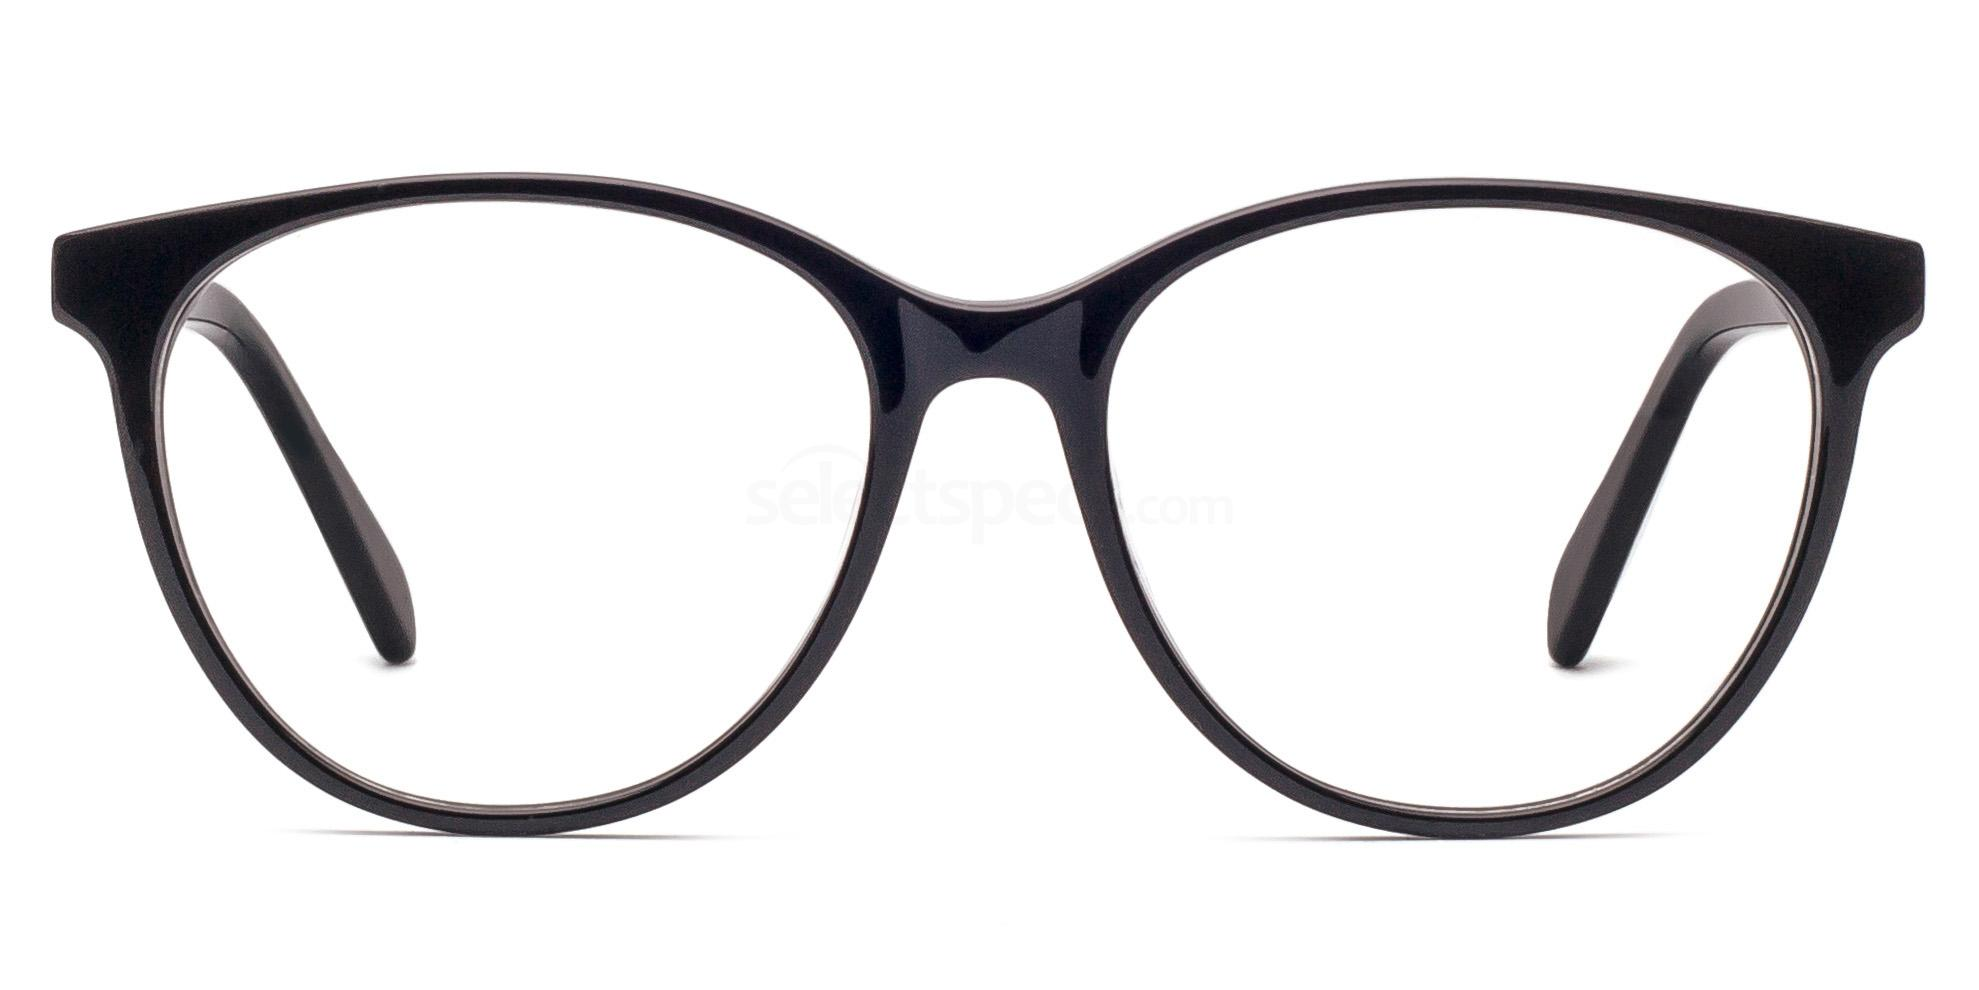 C1 YC-2207 Glasses, Infinity